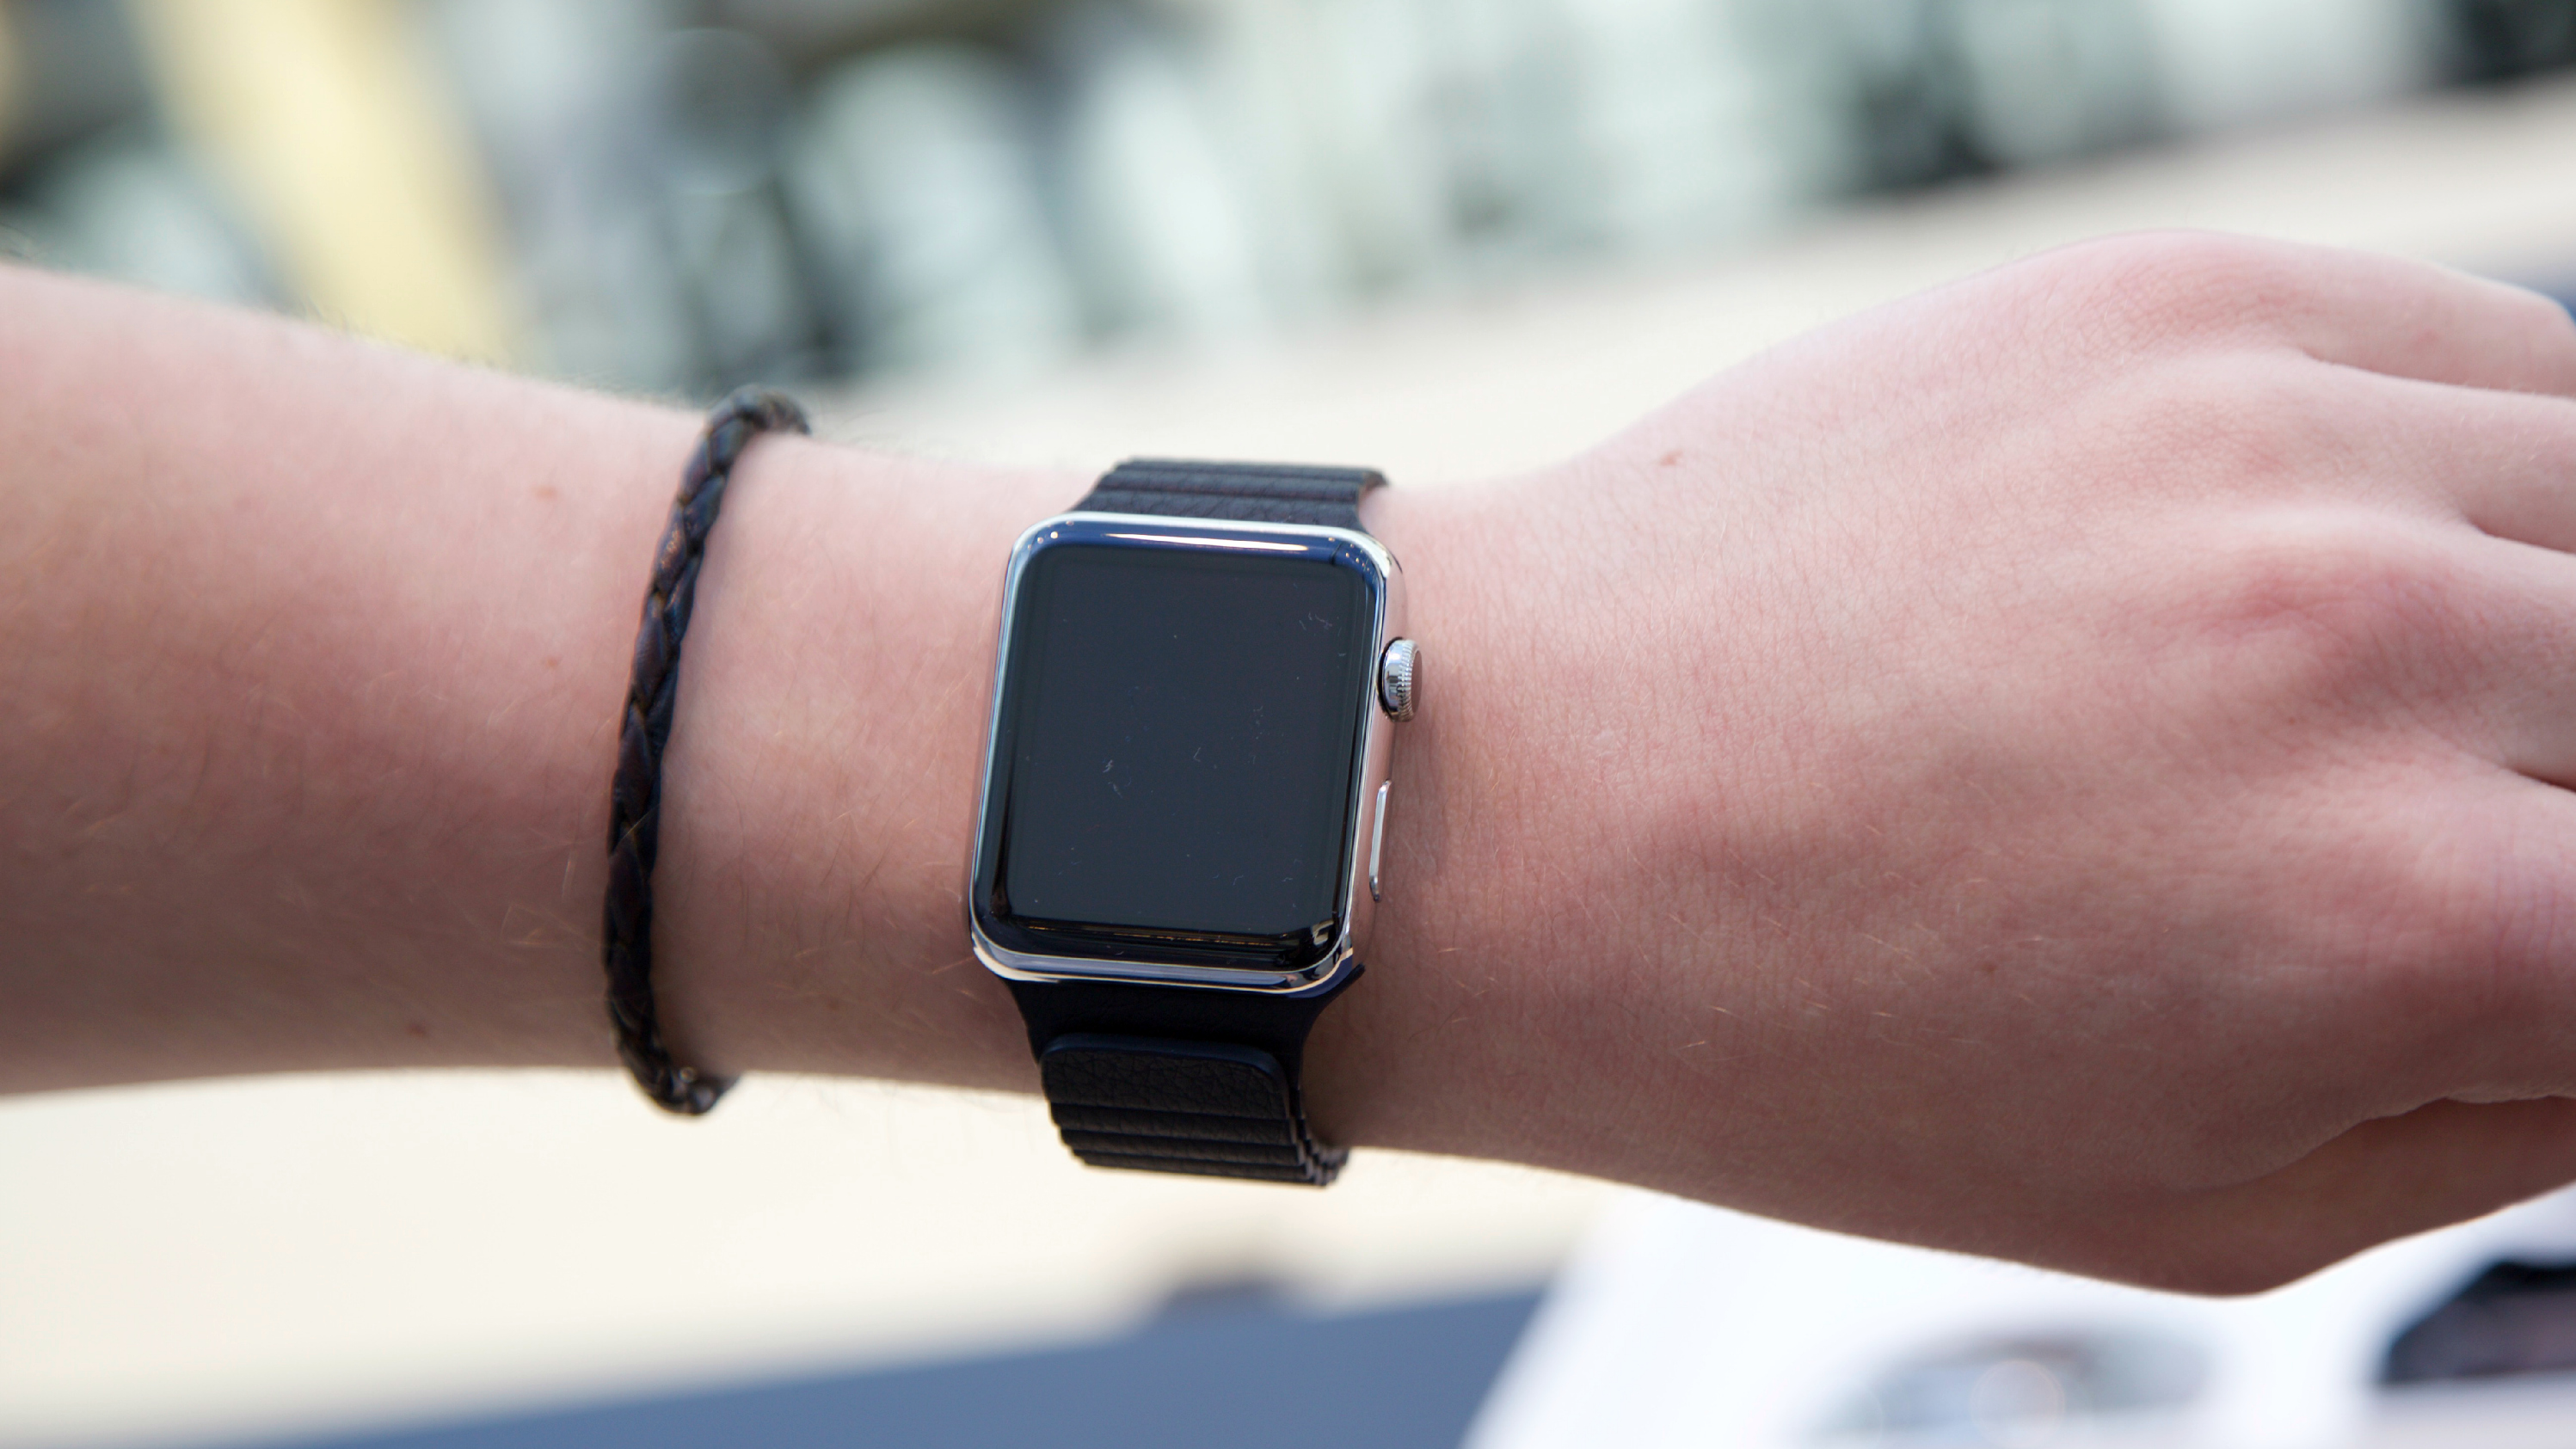 Apple Watch Retail Store Hands On